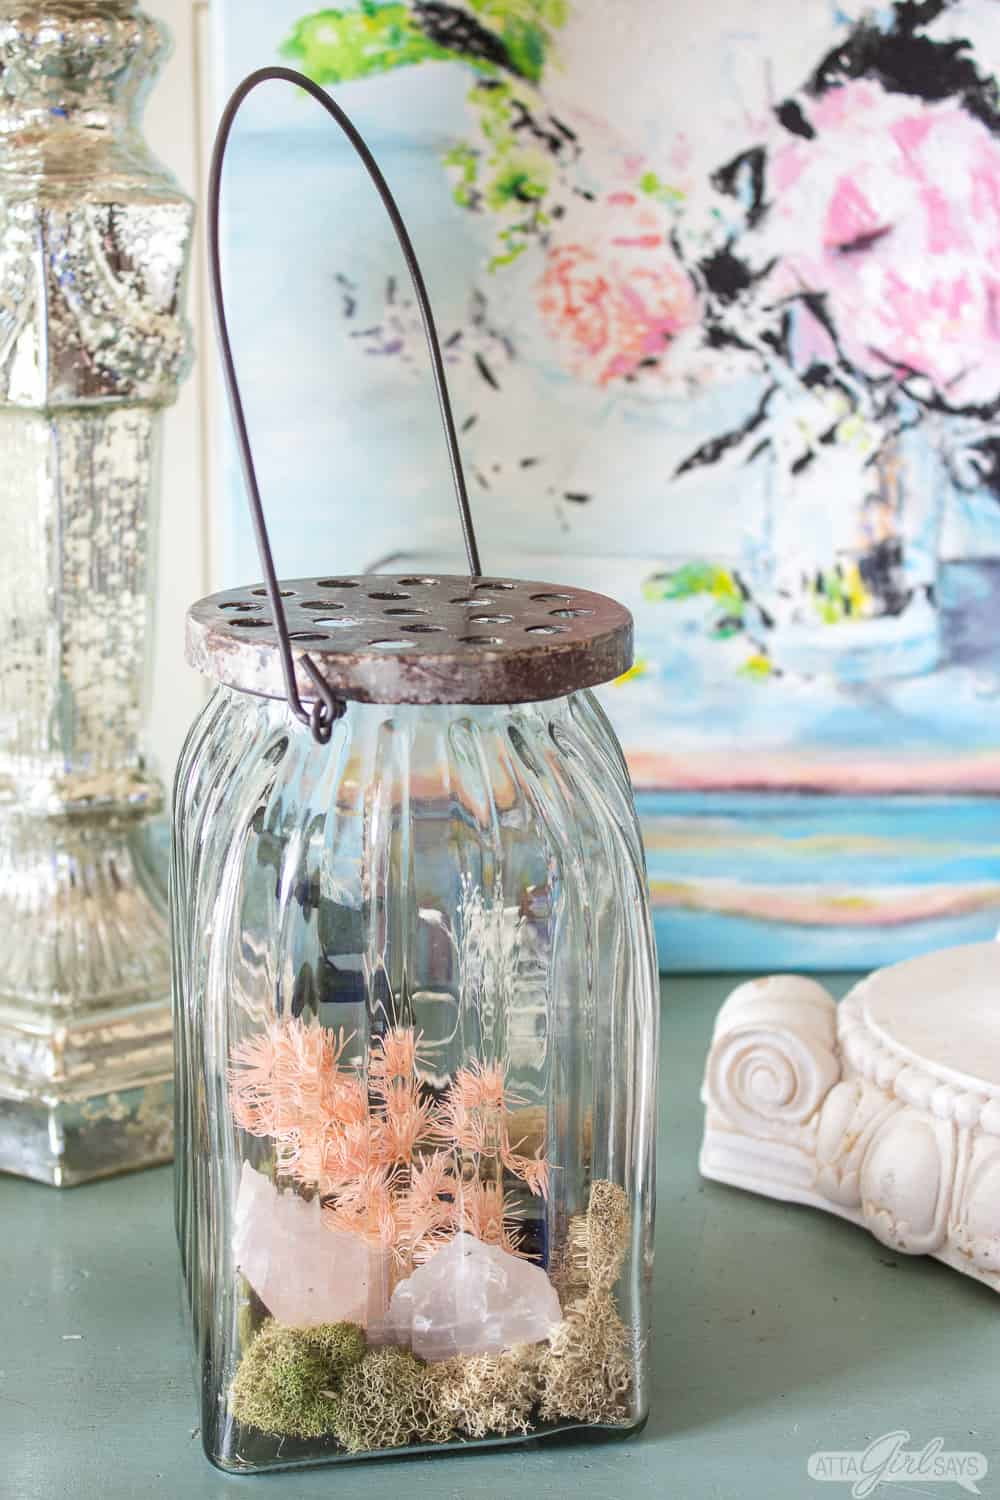 glass jar filled with homemade potpourri made from scented dried botanicals